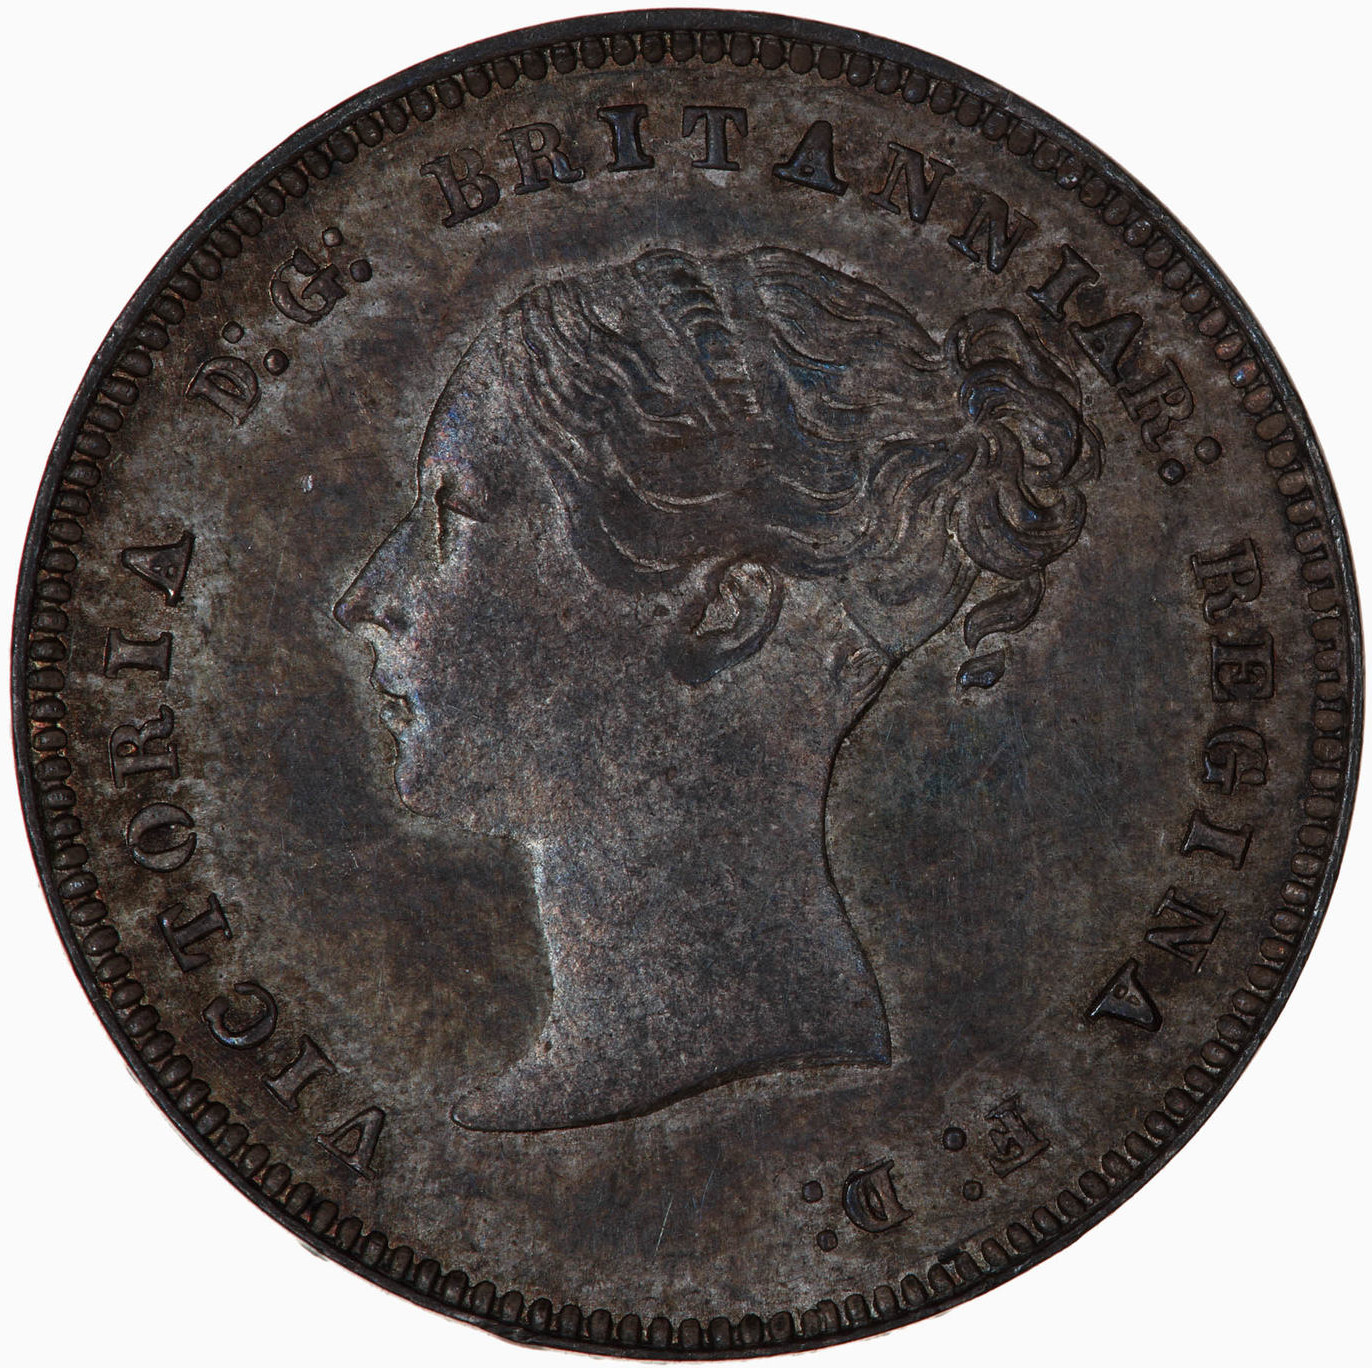 Fourpence 1884 (Maundy): Photo Coin - Groat (Maundy), Queen Victoria, Great Britain, 1884